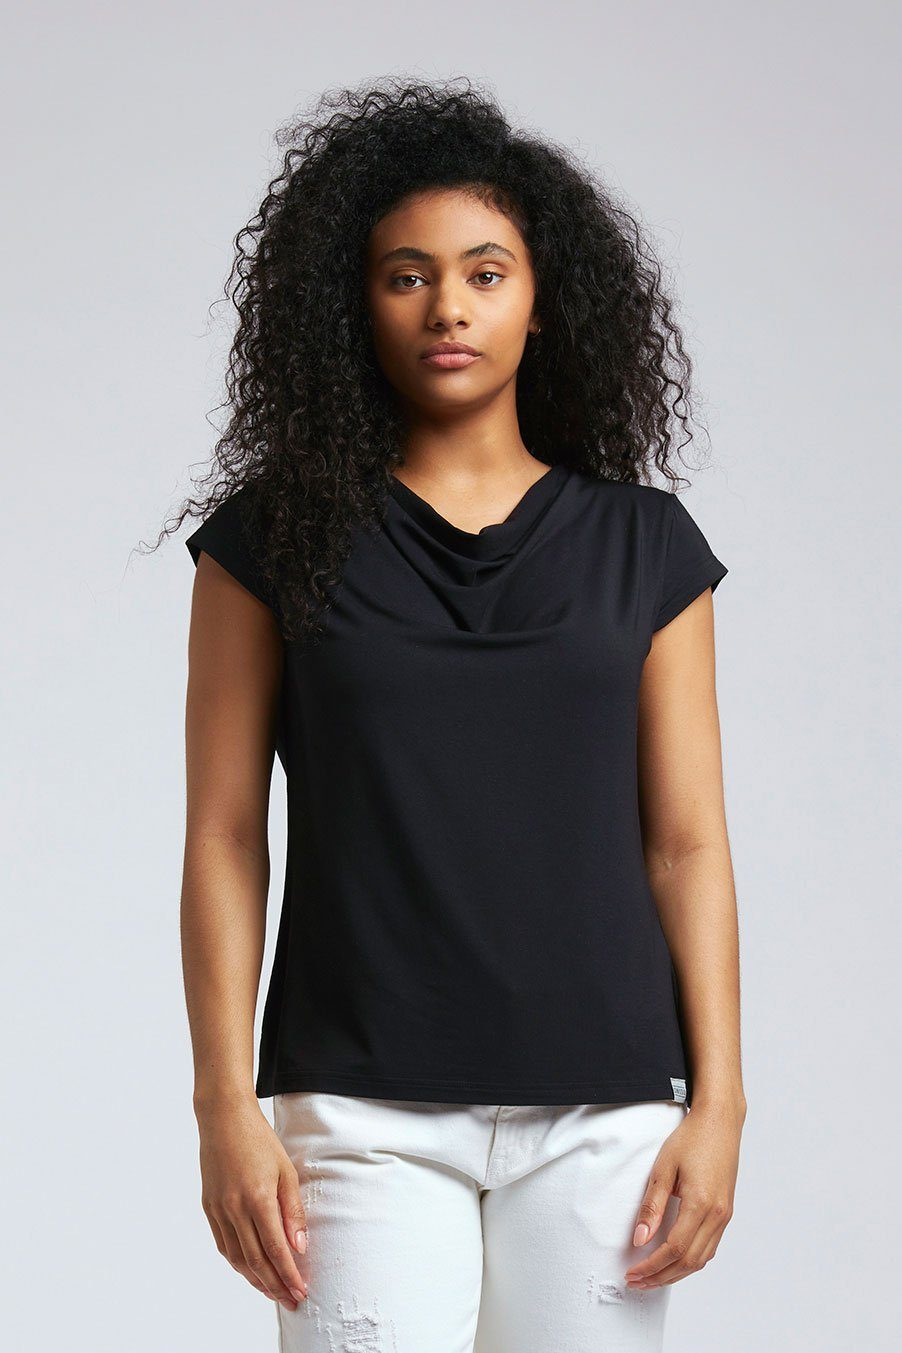 Top - SENSA Modal Top Black